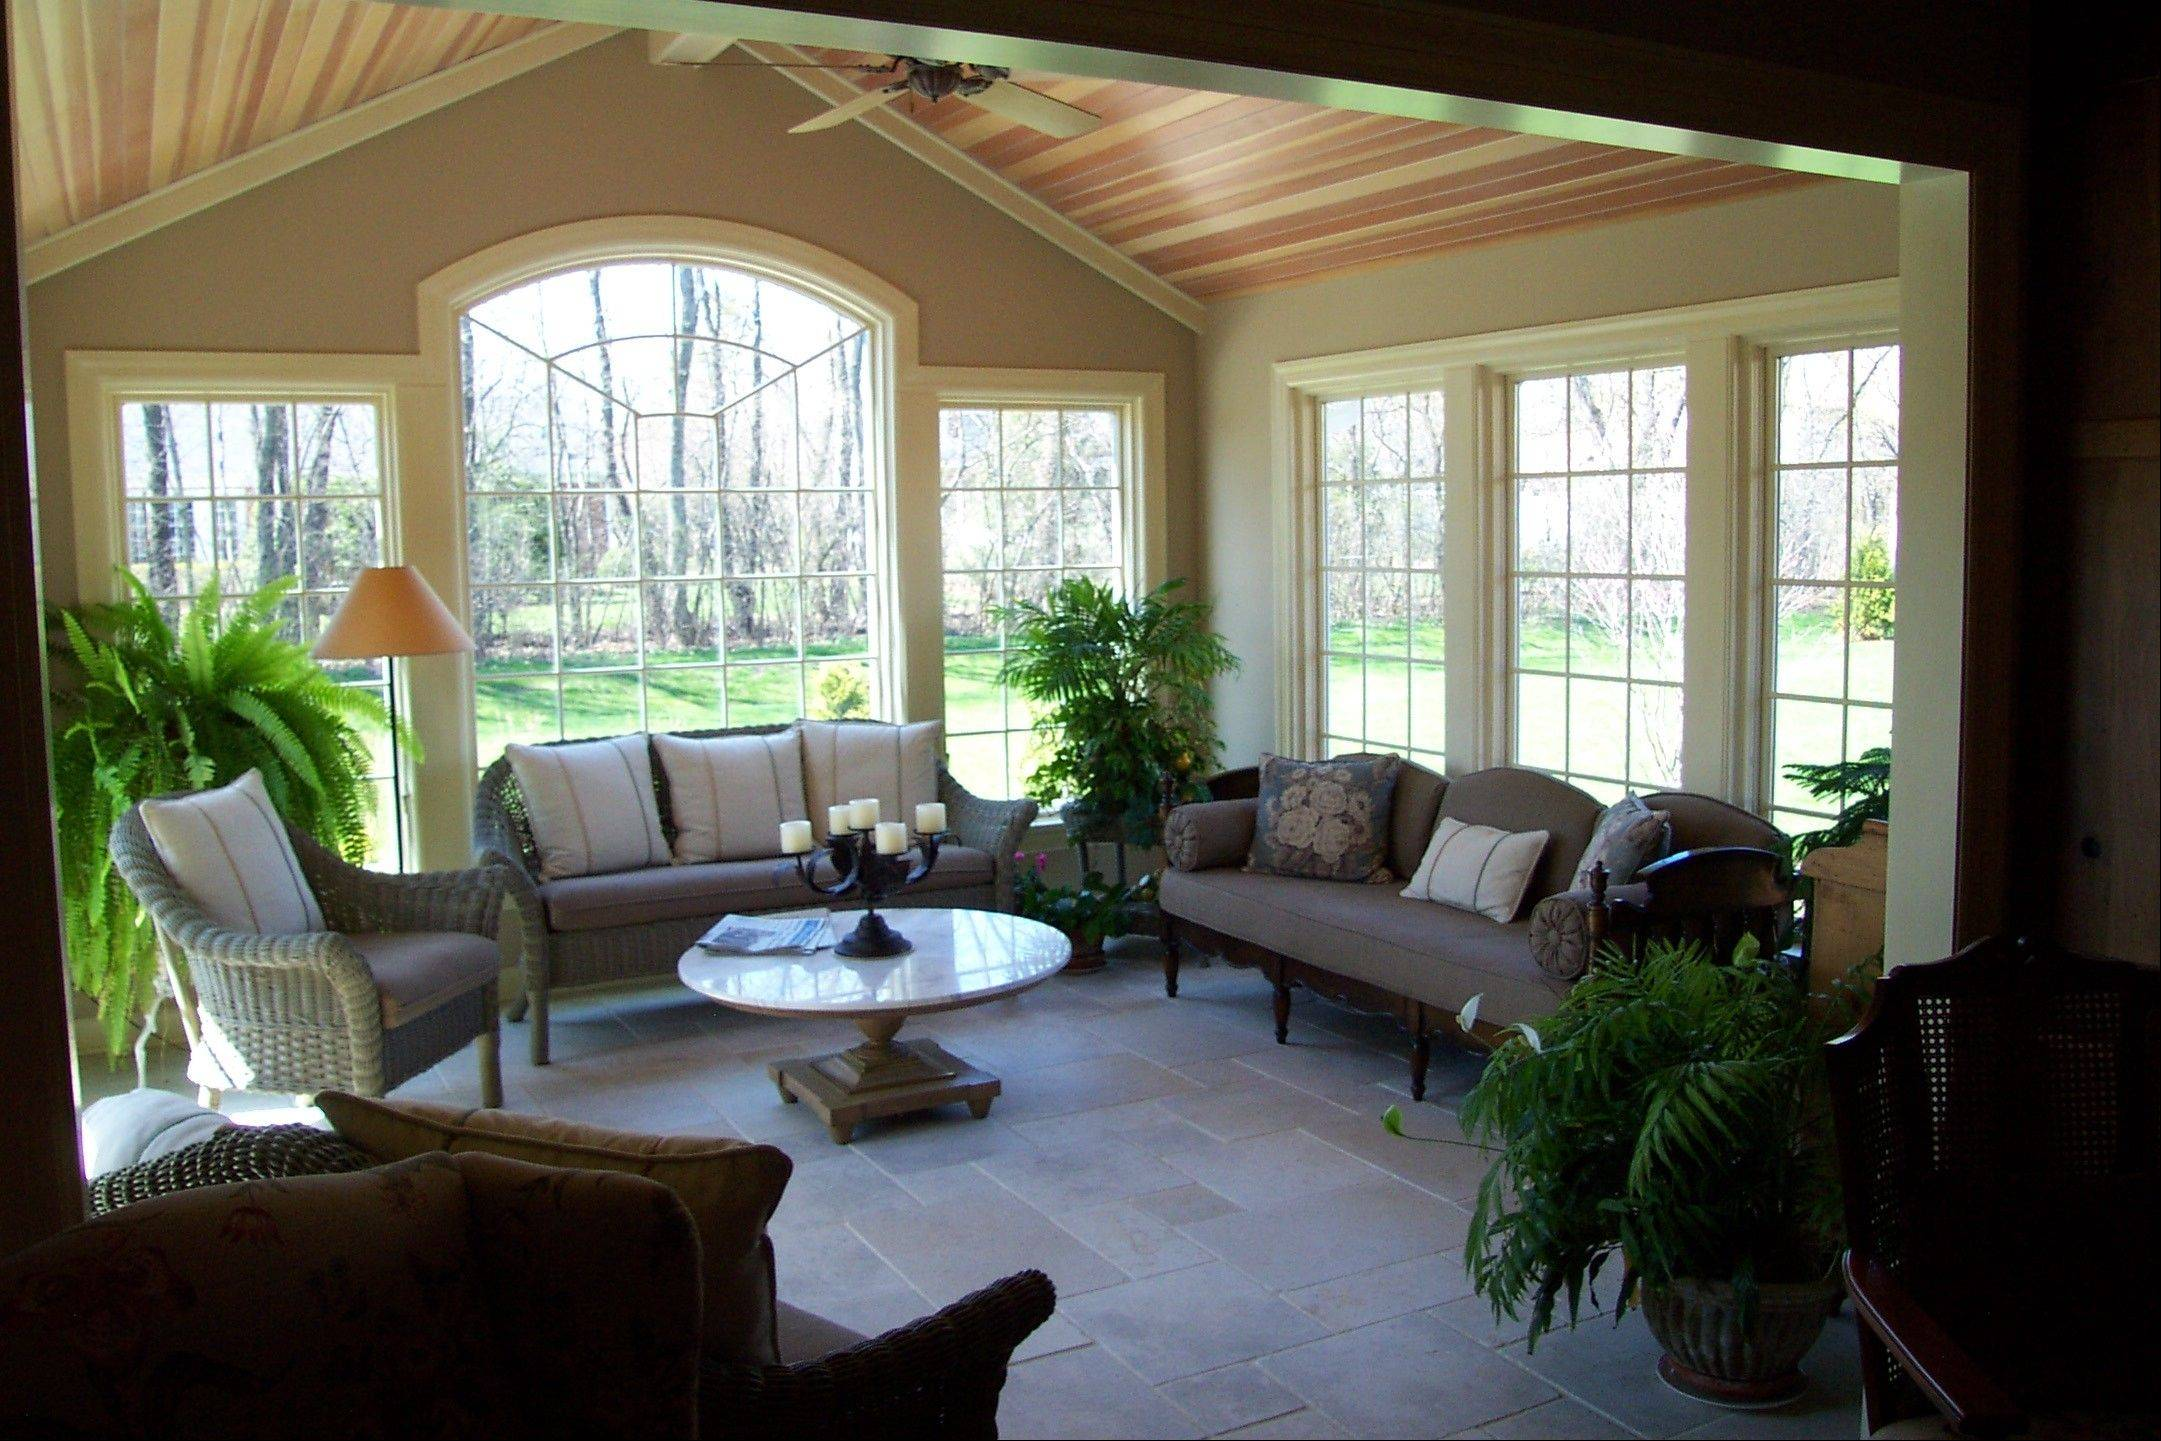 McDowell Inc. in St. Charles recently completed this sunroom addition.